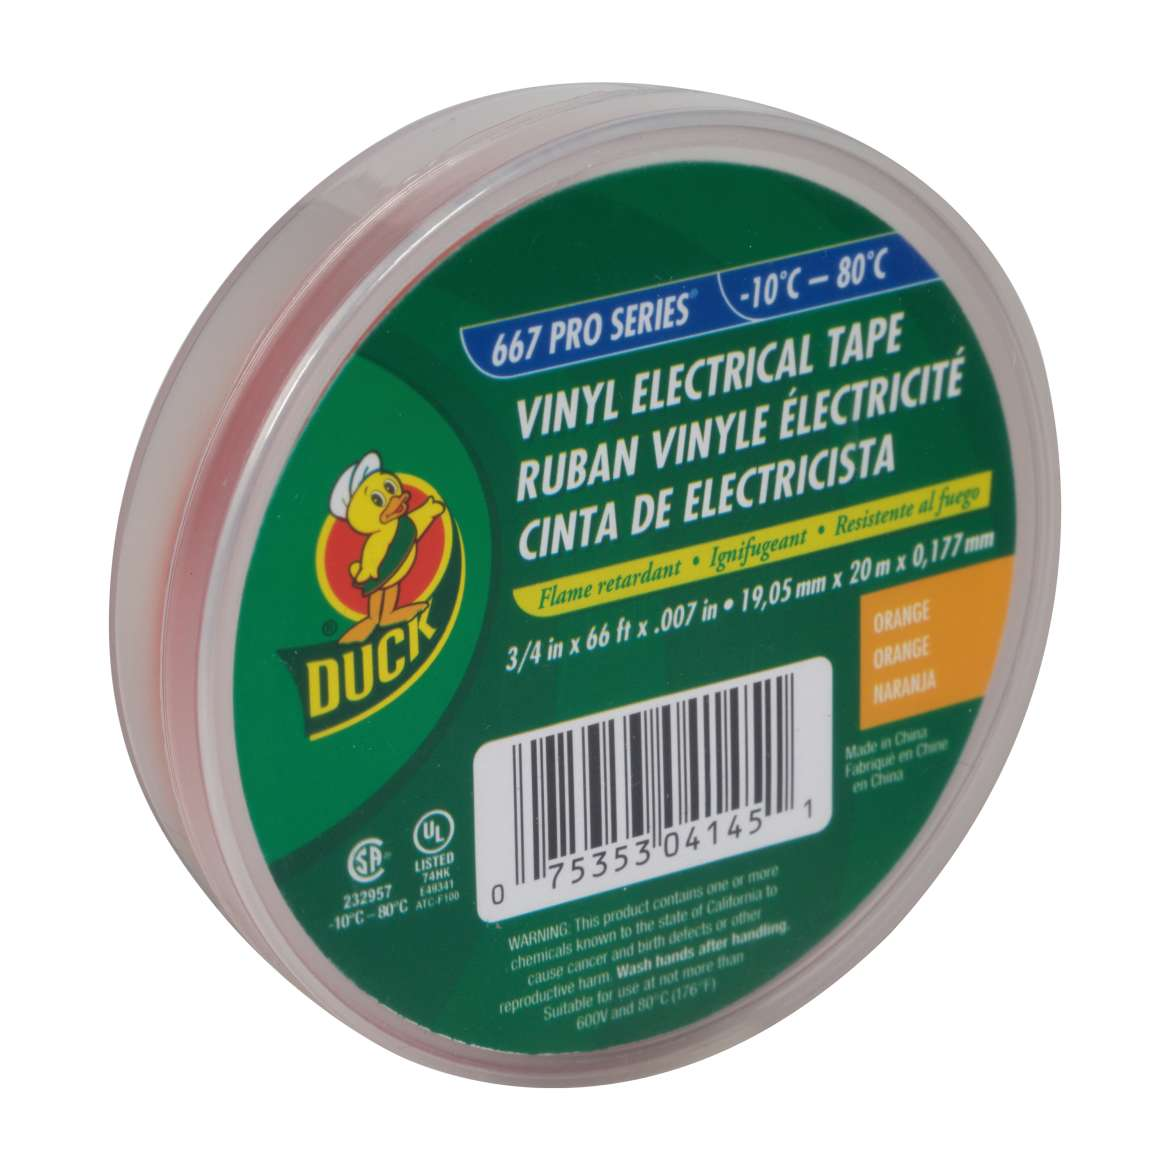 Duck® Brand Professional Electrical Tape Canister Pack - Orange, .75 in. x 66 ft. x 7 mil. Image